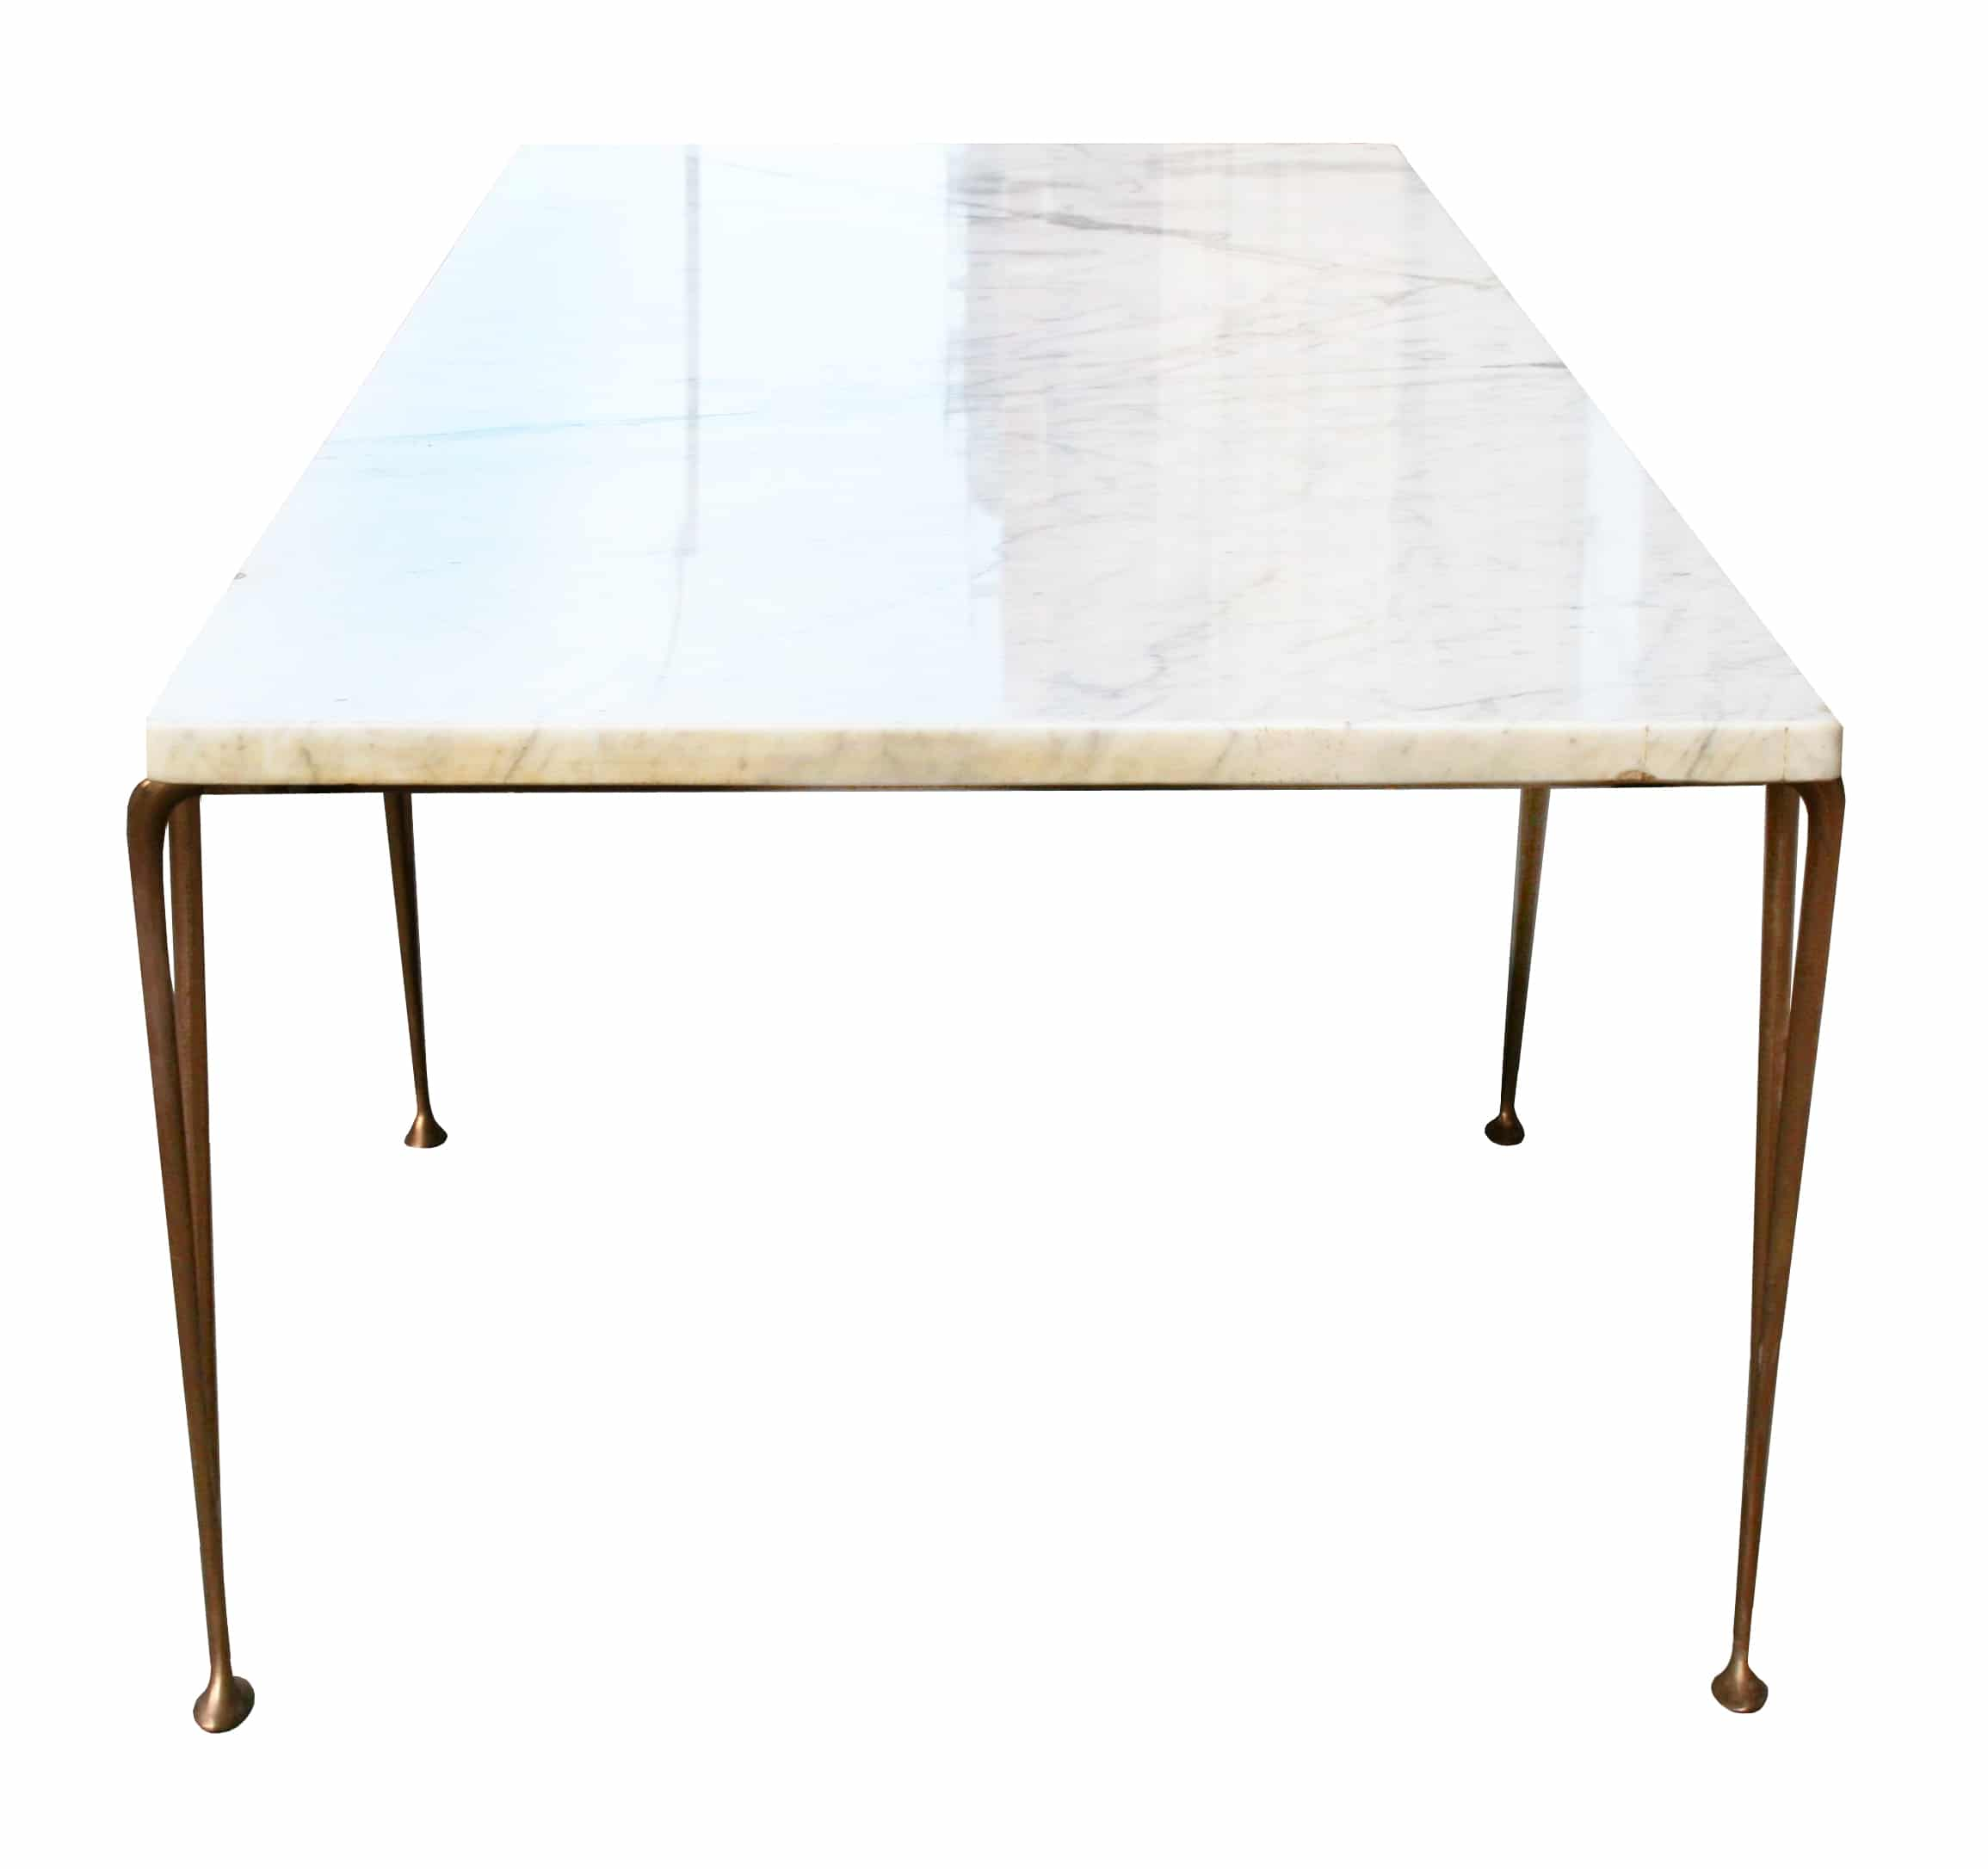 Hugh Acton Marble And Brass Coffee Table